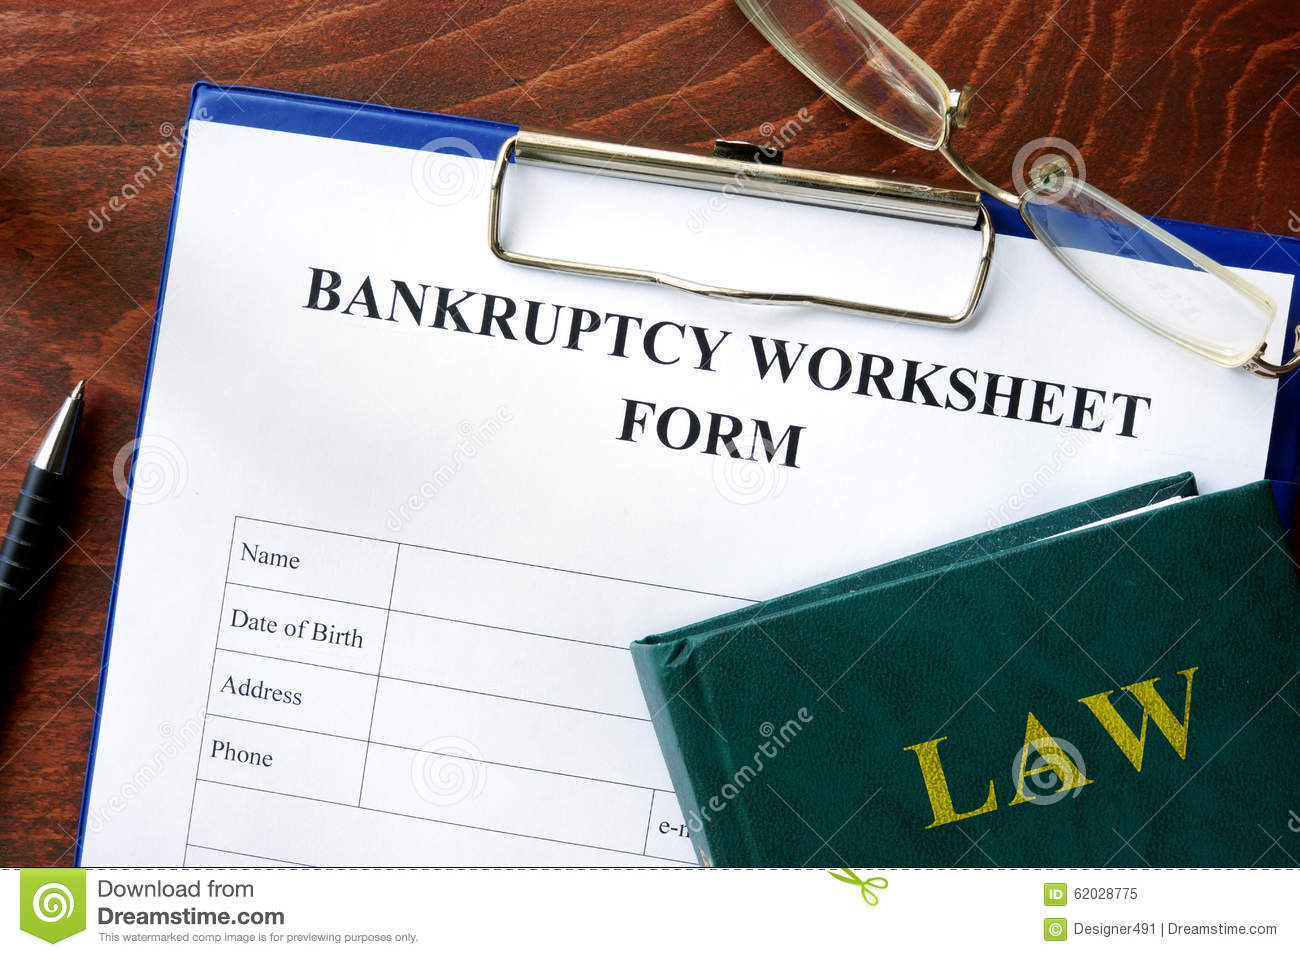 Worksheets Bankruptcy Worksheet worksheets bankruptcy worksheet cricmag free for kids form stock image of company 62028775 form